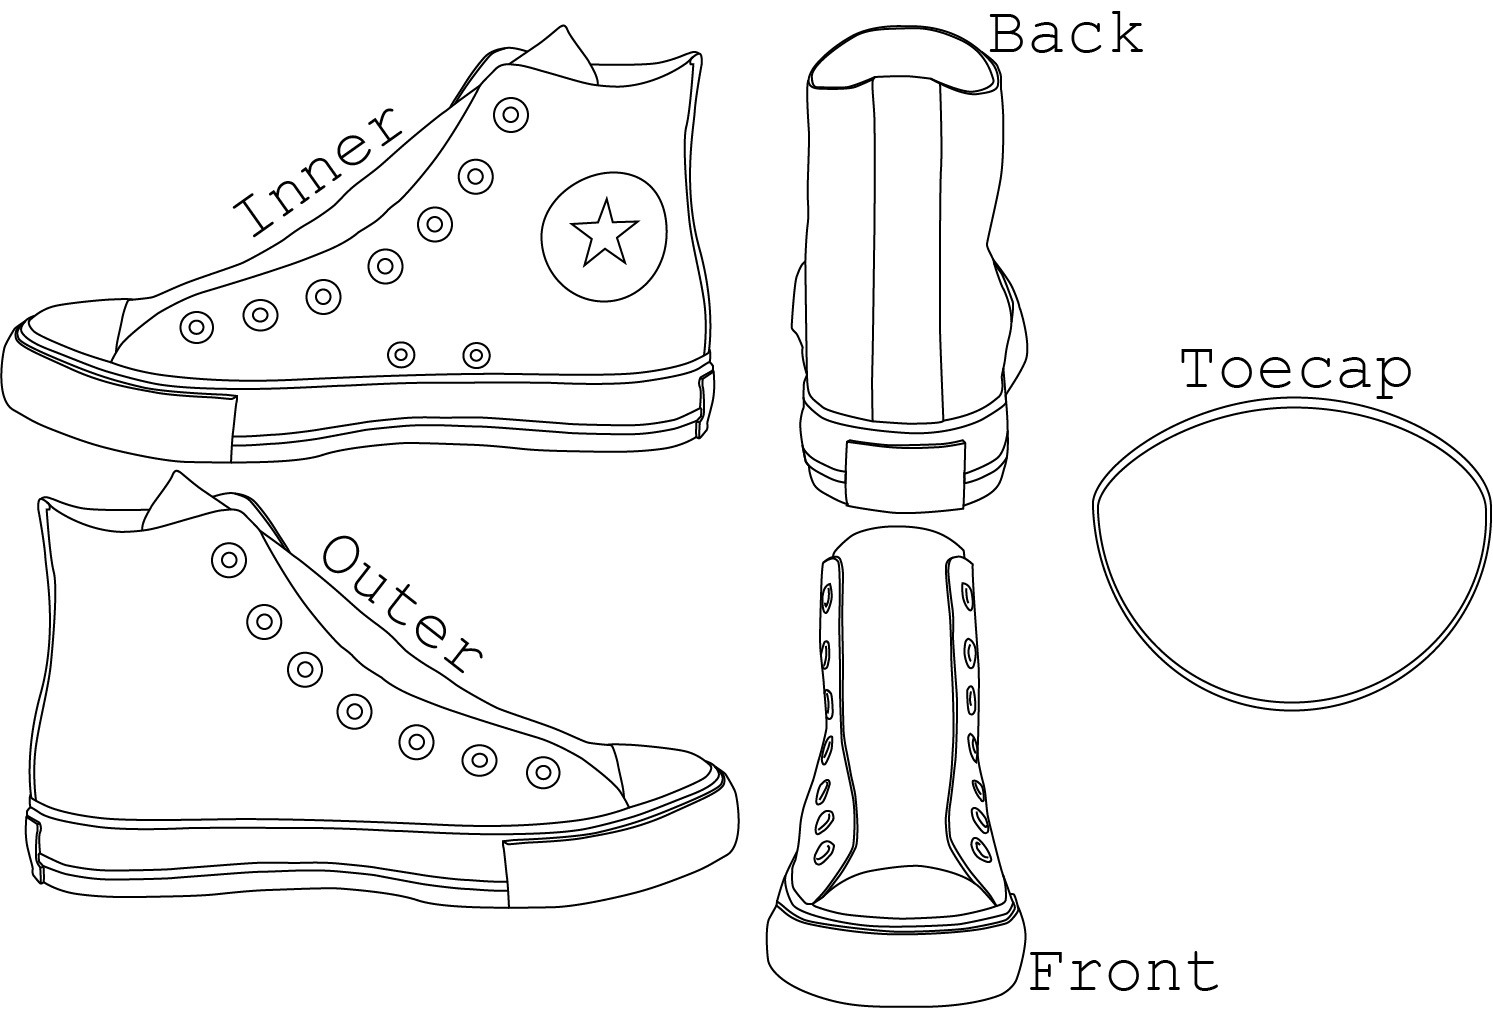 Drawn shoe converse high top AlexChastain Template tops on Chuck